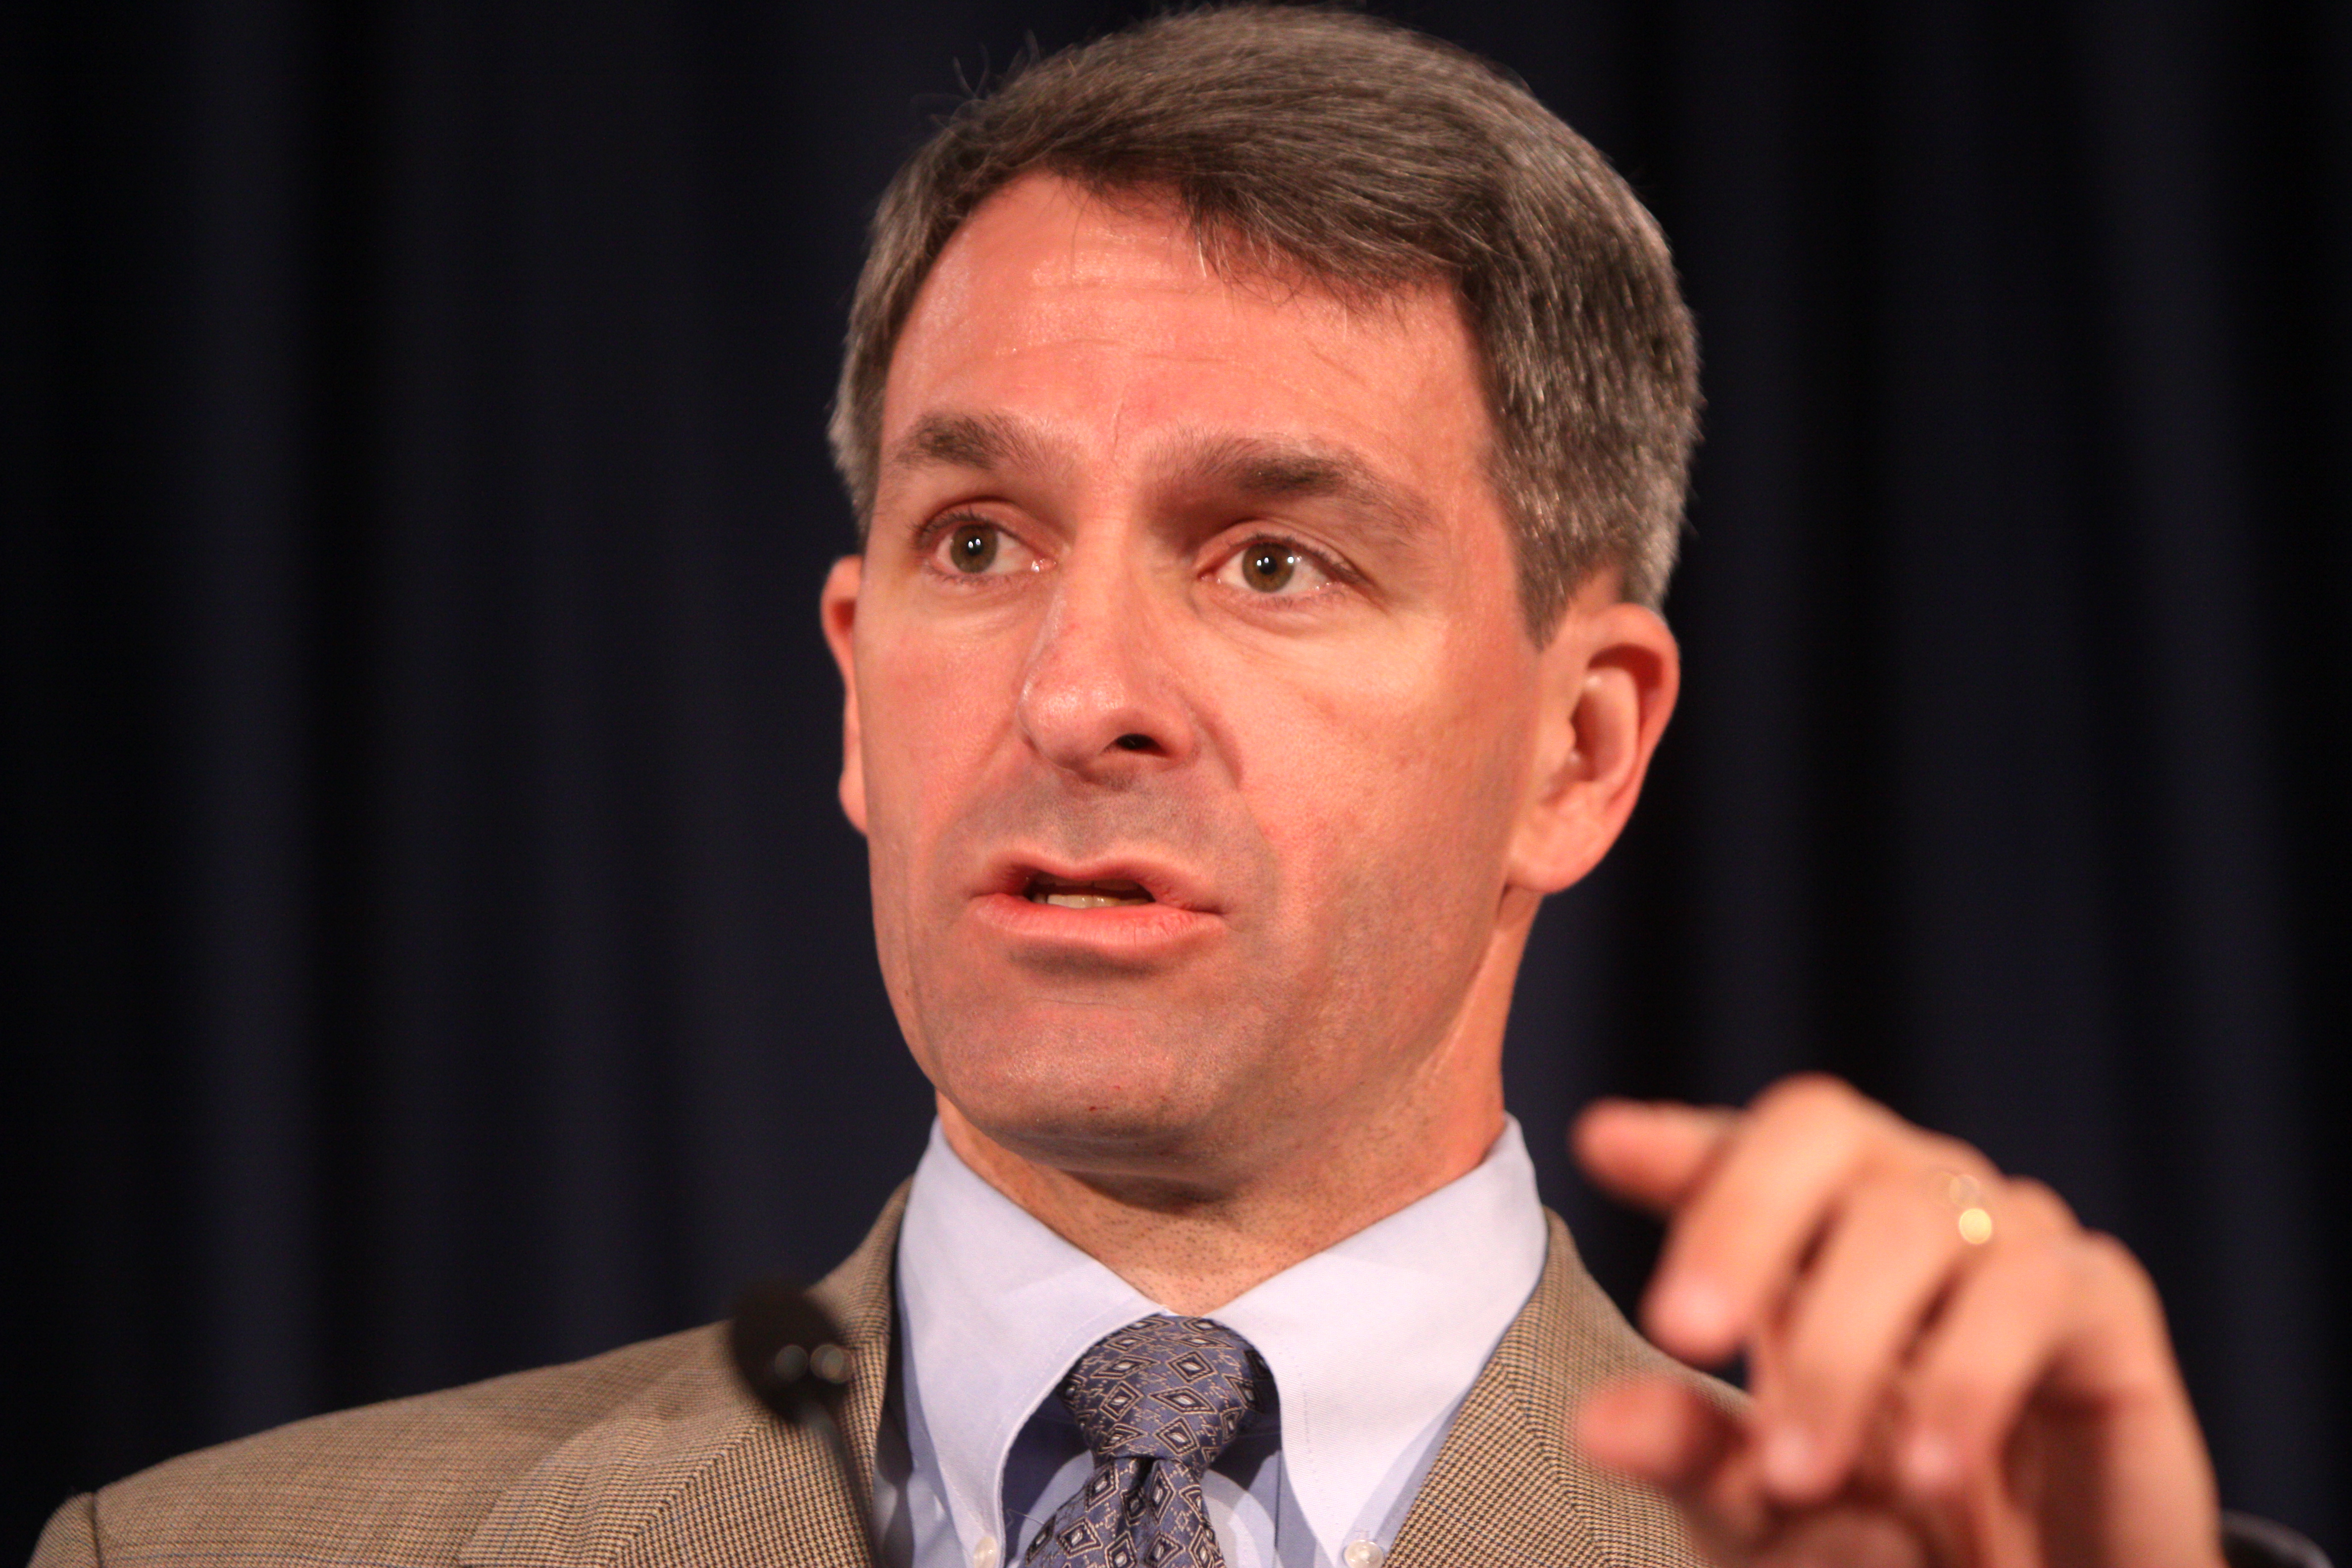 Cuccinelli caught lying again about his relationship with ethics-challenged CEO